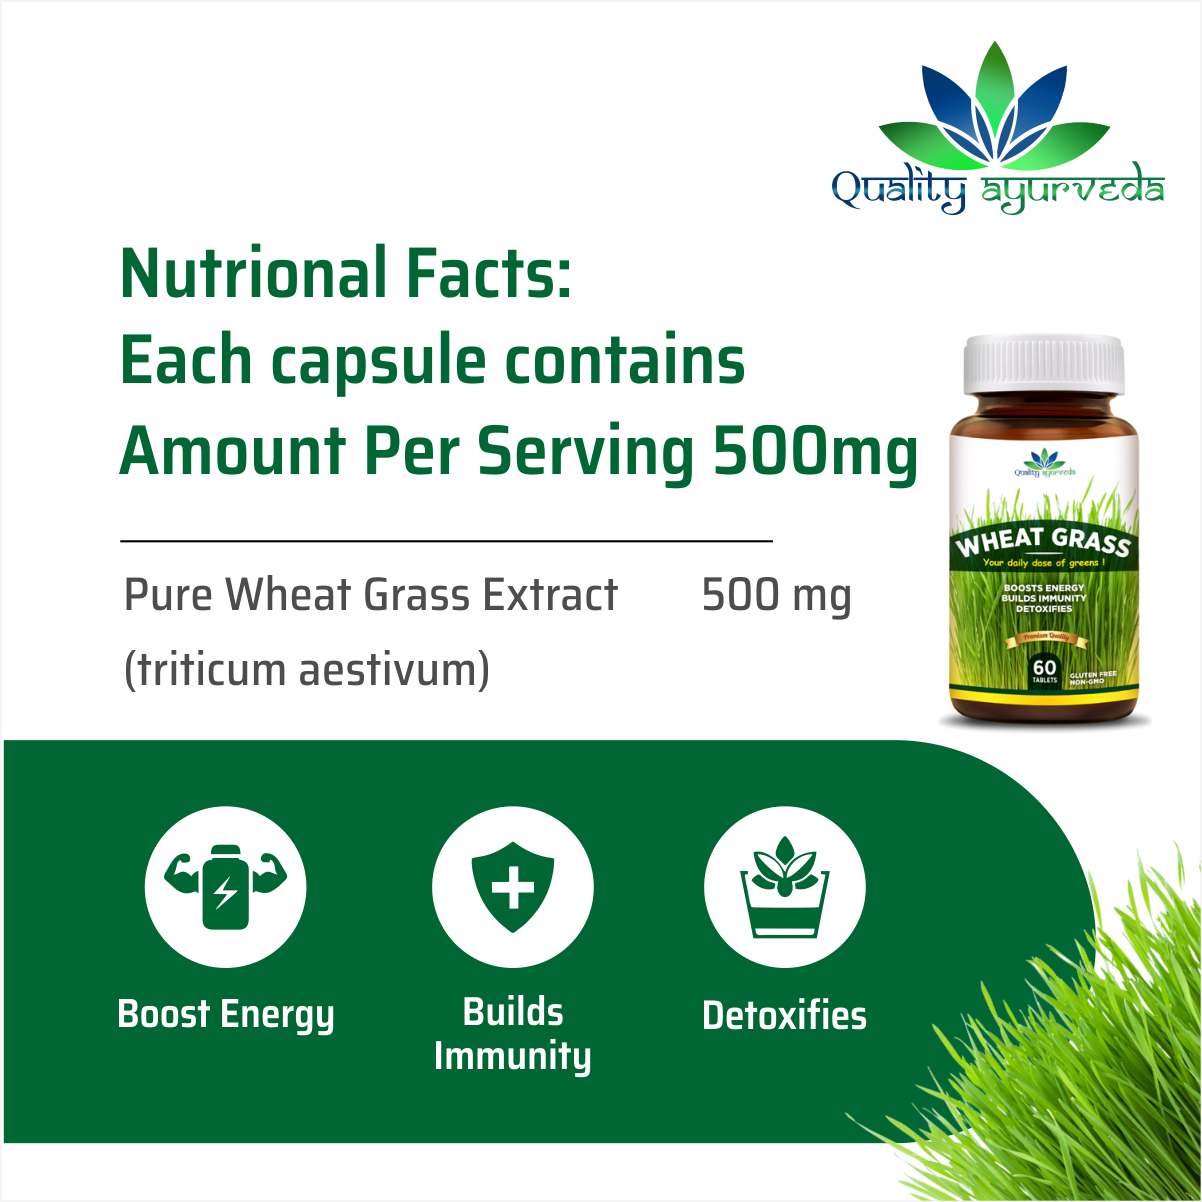 Wheat Grass – Your daily dose of greens